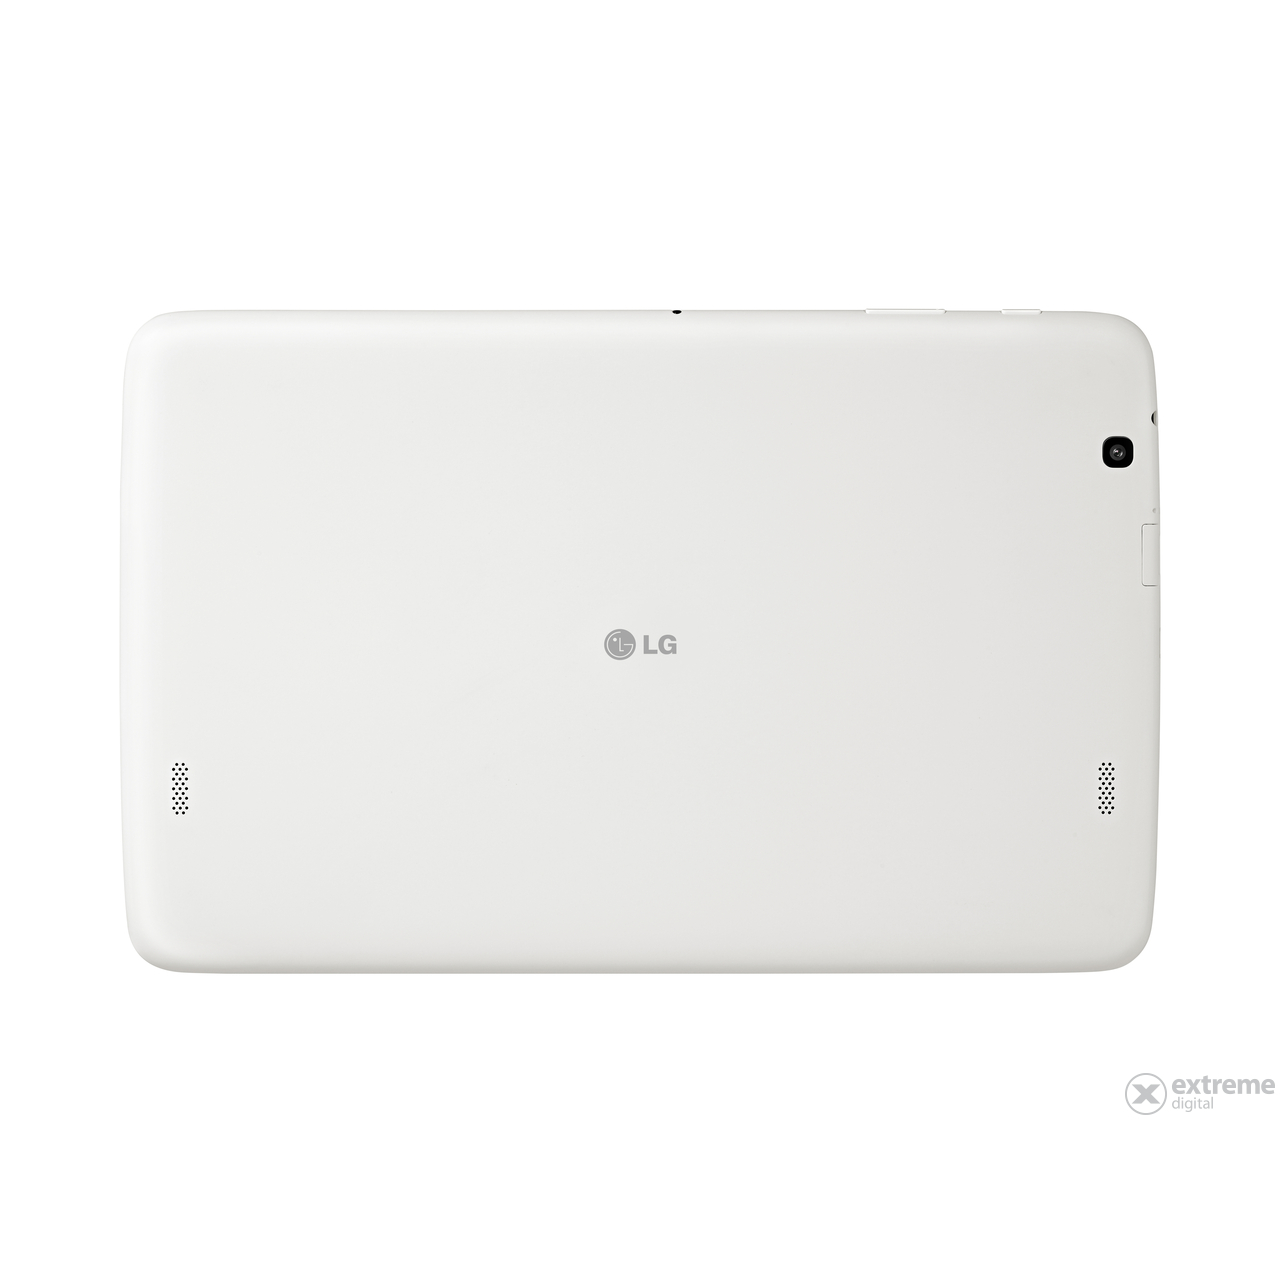 LG G-PAD 10.1 16GB tablica, White (Android)